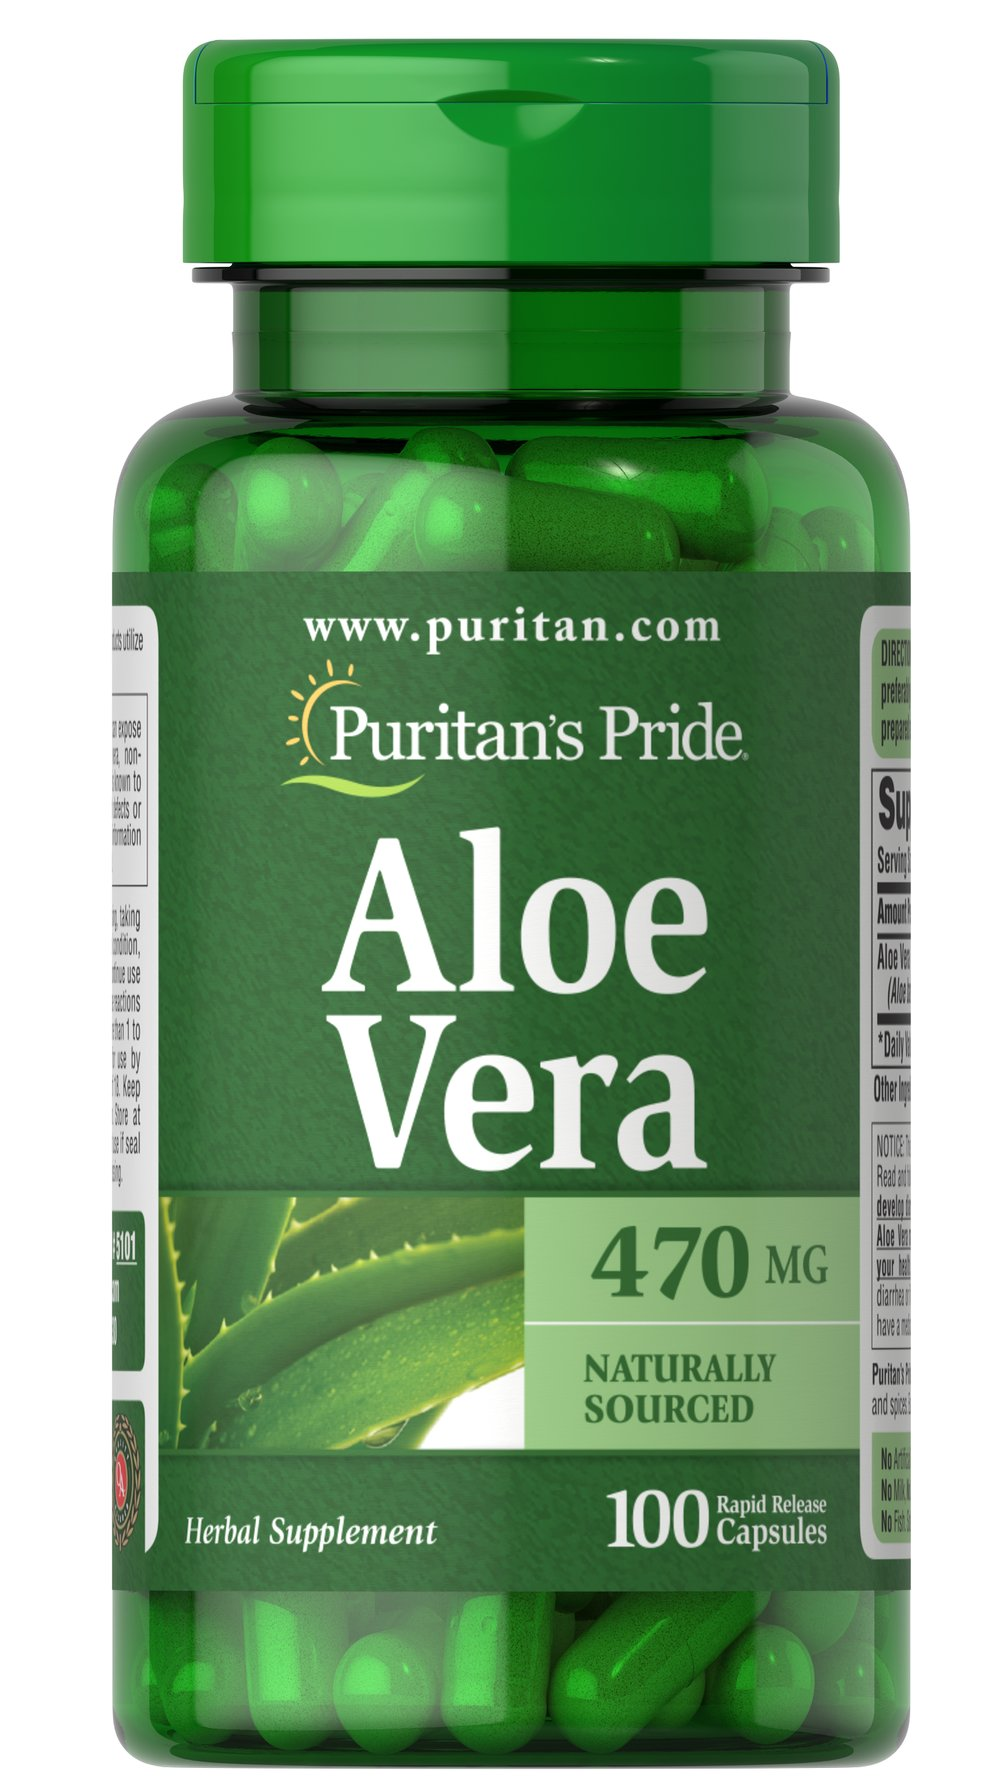 Aloe Vera 470 mg <p>Serves as an aid for healthy digestion**</p><p>Plays a role in the well-being of the body**</p><p>Convenience of capsules, softgels and liquids is unsurpassed</p><p>Has been used and trusted for centuries</p><p>Aloe Vera  has been shown to support a healthy digestive system.** Its popularity as a digestive aid makes it an excellent addition to your daily eating plan.**</p> 100 Capsules 470 mg $12.99